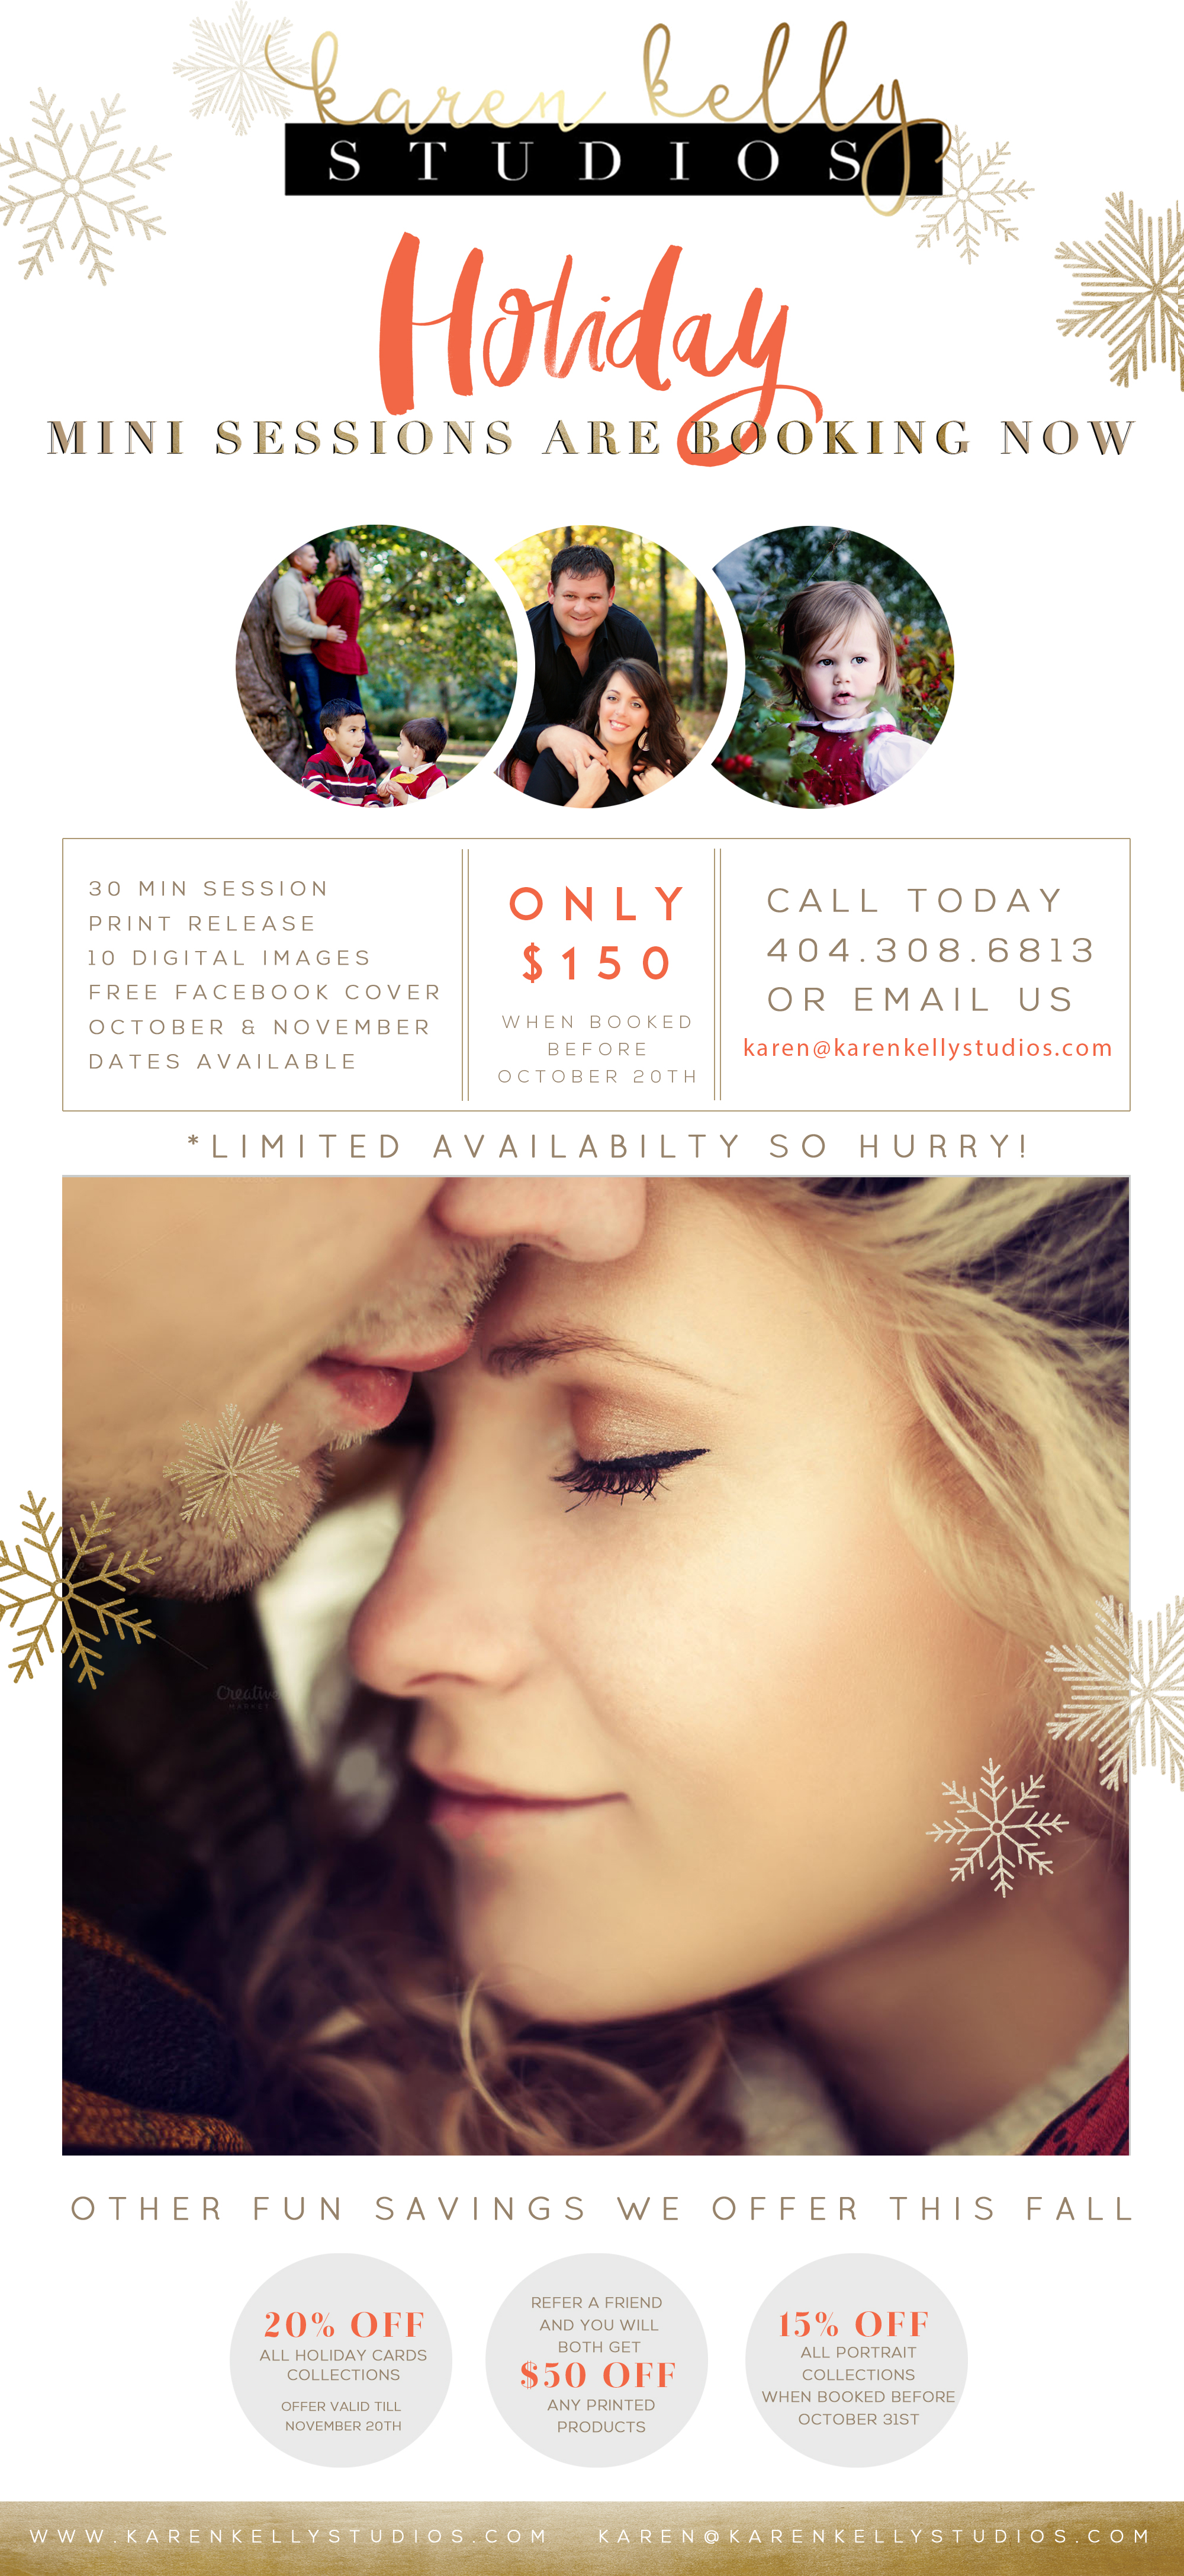 Karen Kelly Studios Holiday Sessions are now Booking!